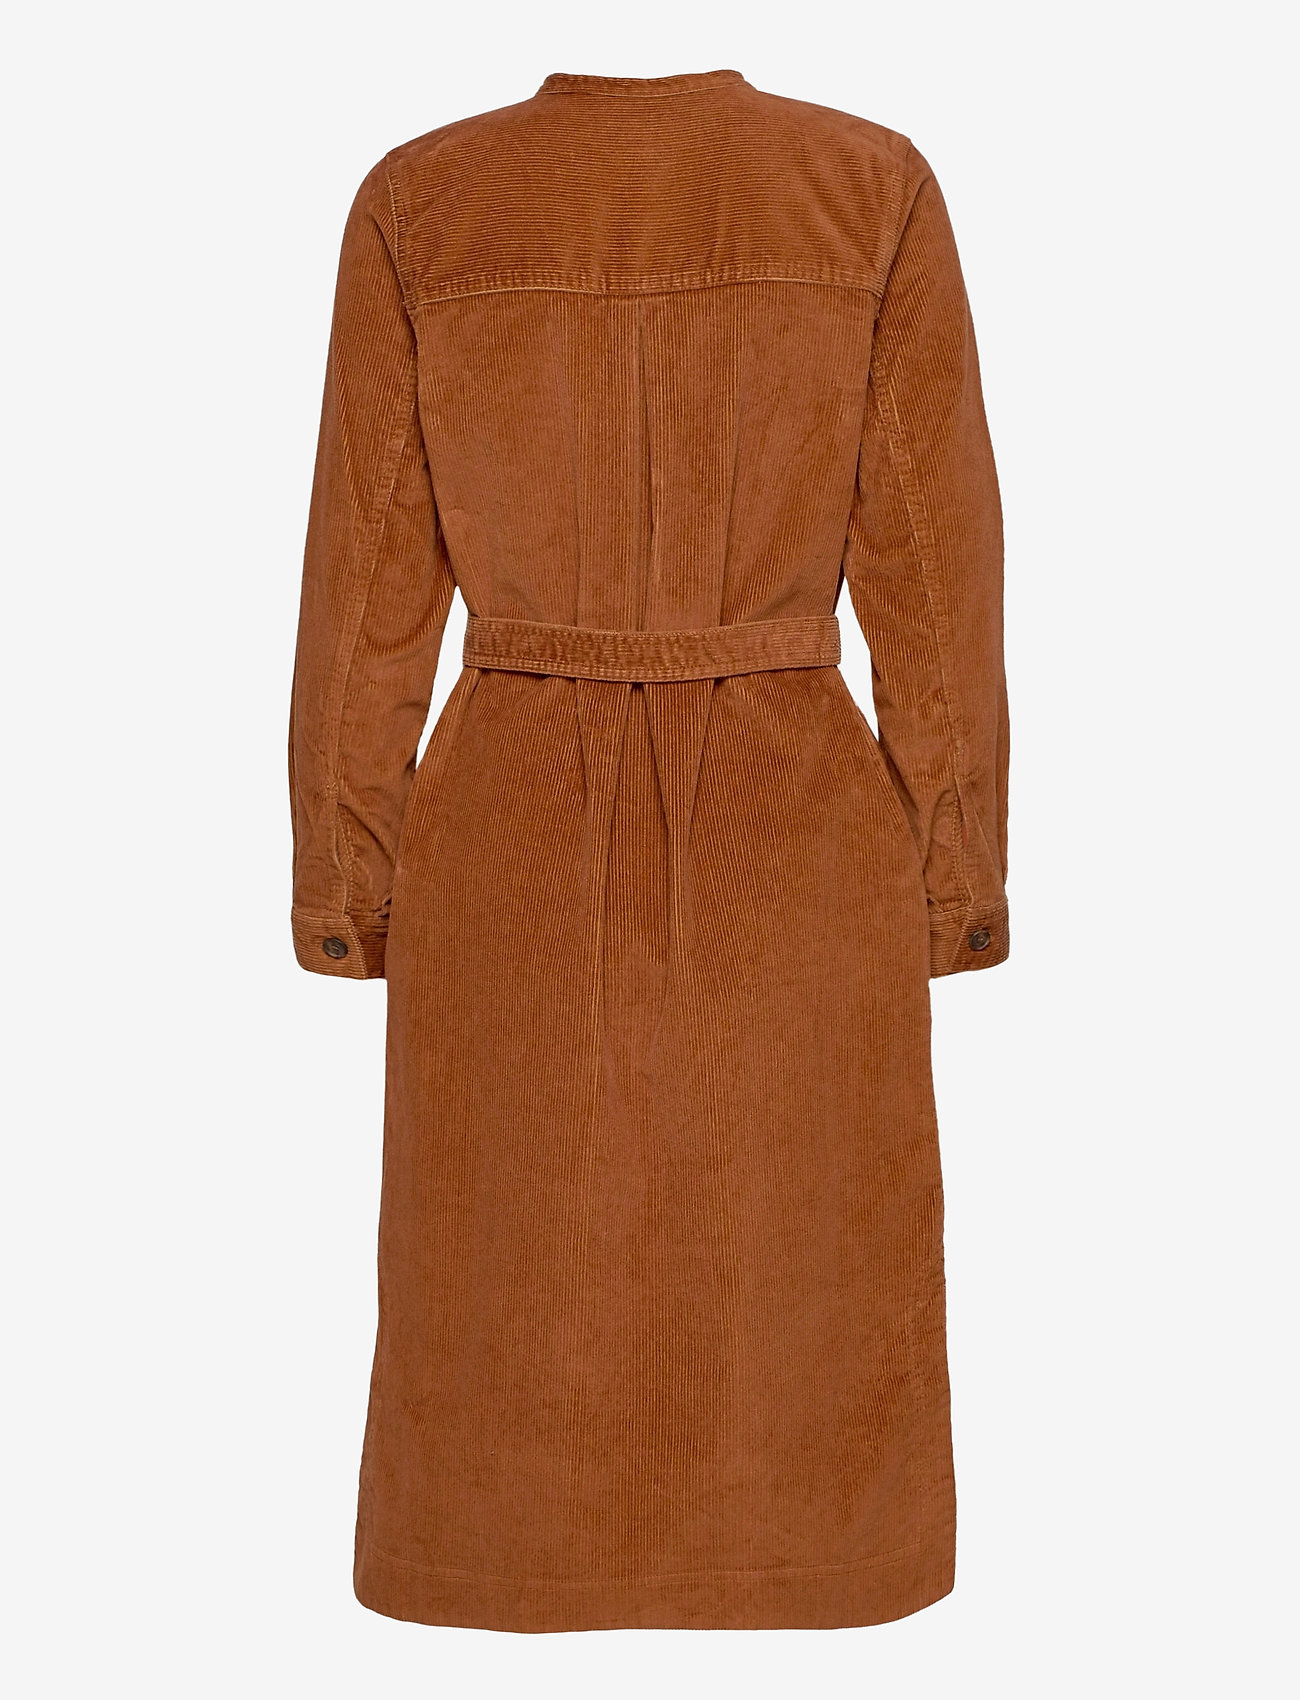 GAP - LS CORD SHIRTDRESS - everyday dresses - chestnut 616 - 1